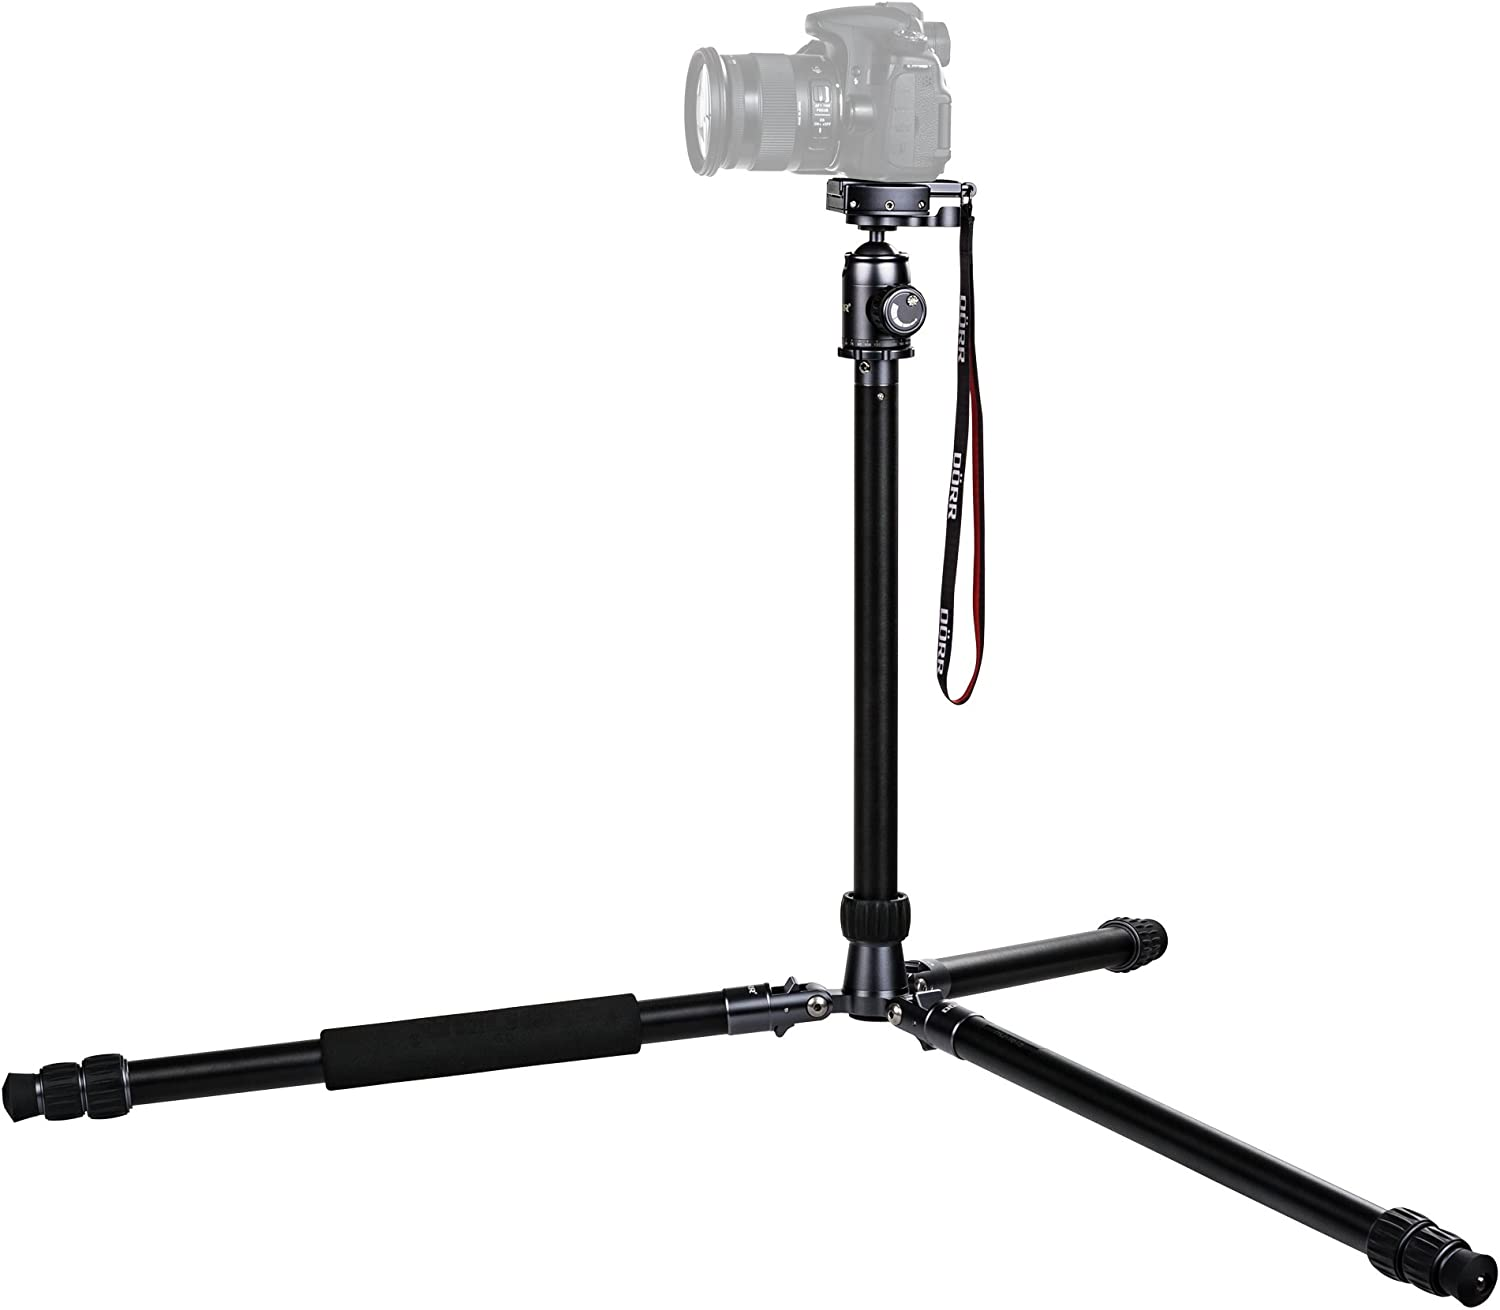 Dorr HQ1615 3 Section Aluminium Tripod with HQ33 QR Ball Head for Camera